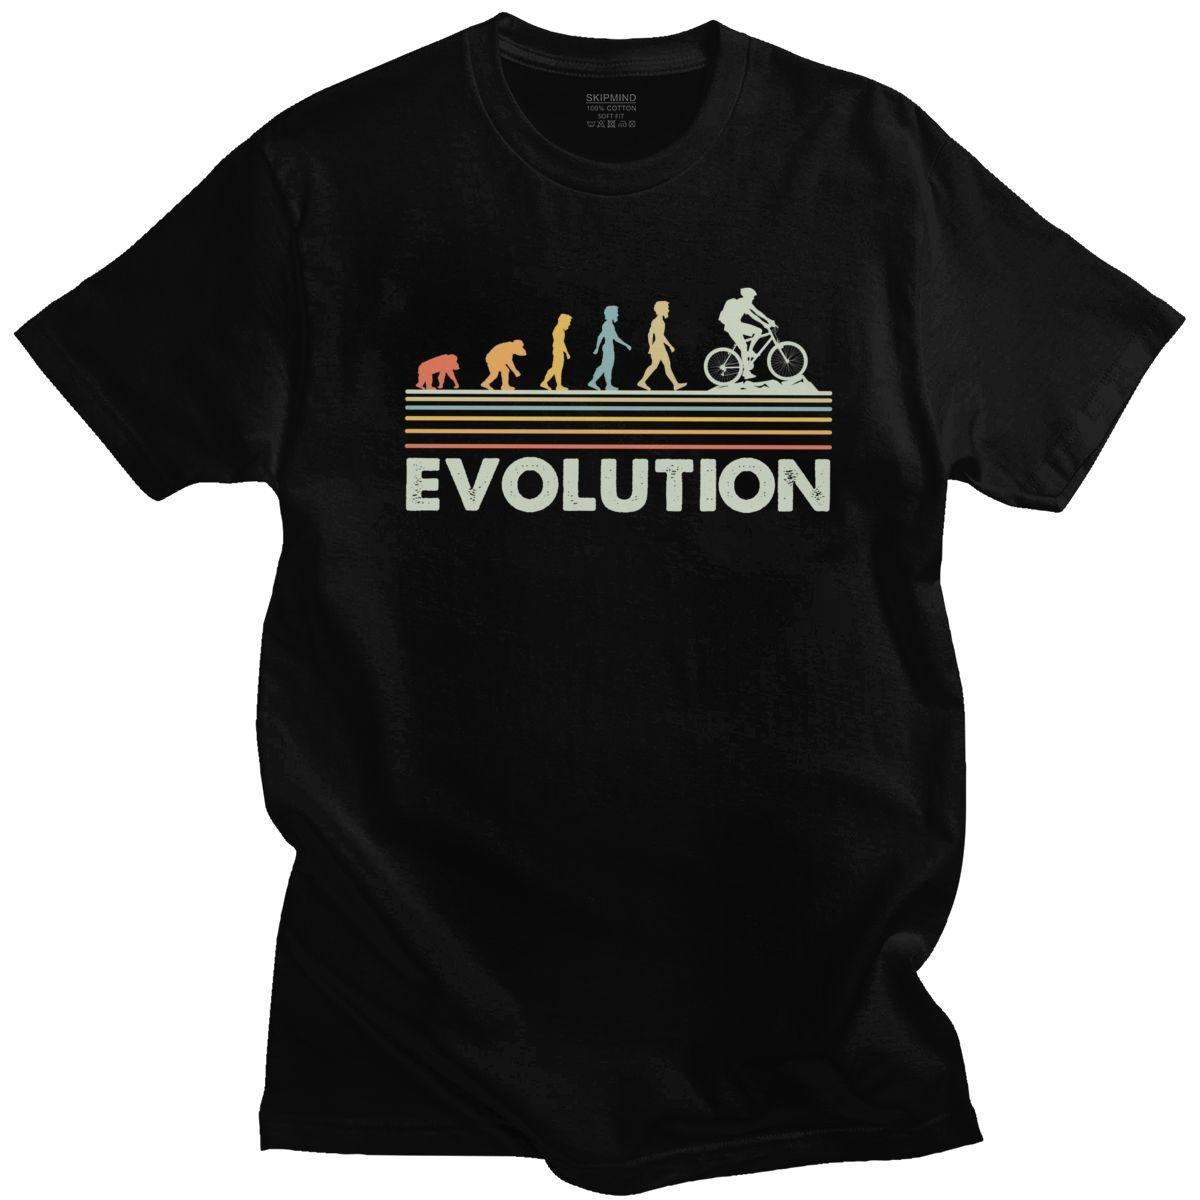 Funny Mountain Bike Evolution T Shirt Men Cotton Handsome T-Shirt Short Sleeved MTB Biker Cyclist Tee Top Fitted Clothing Merch